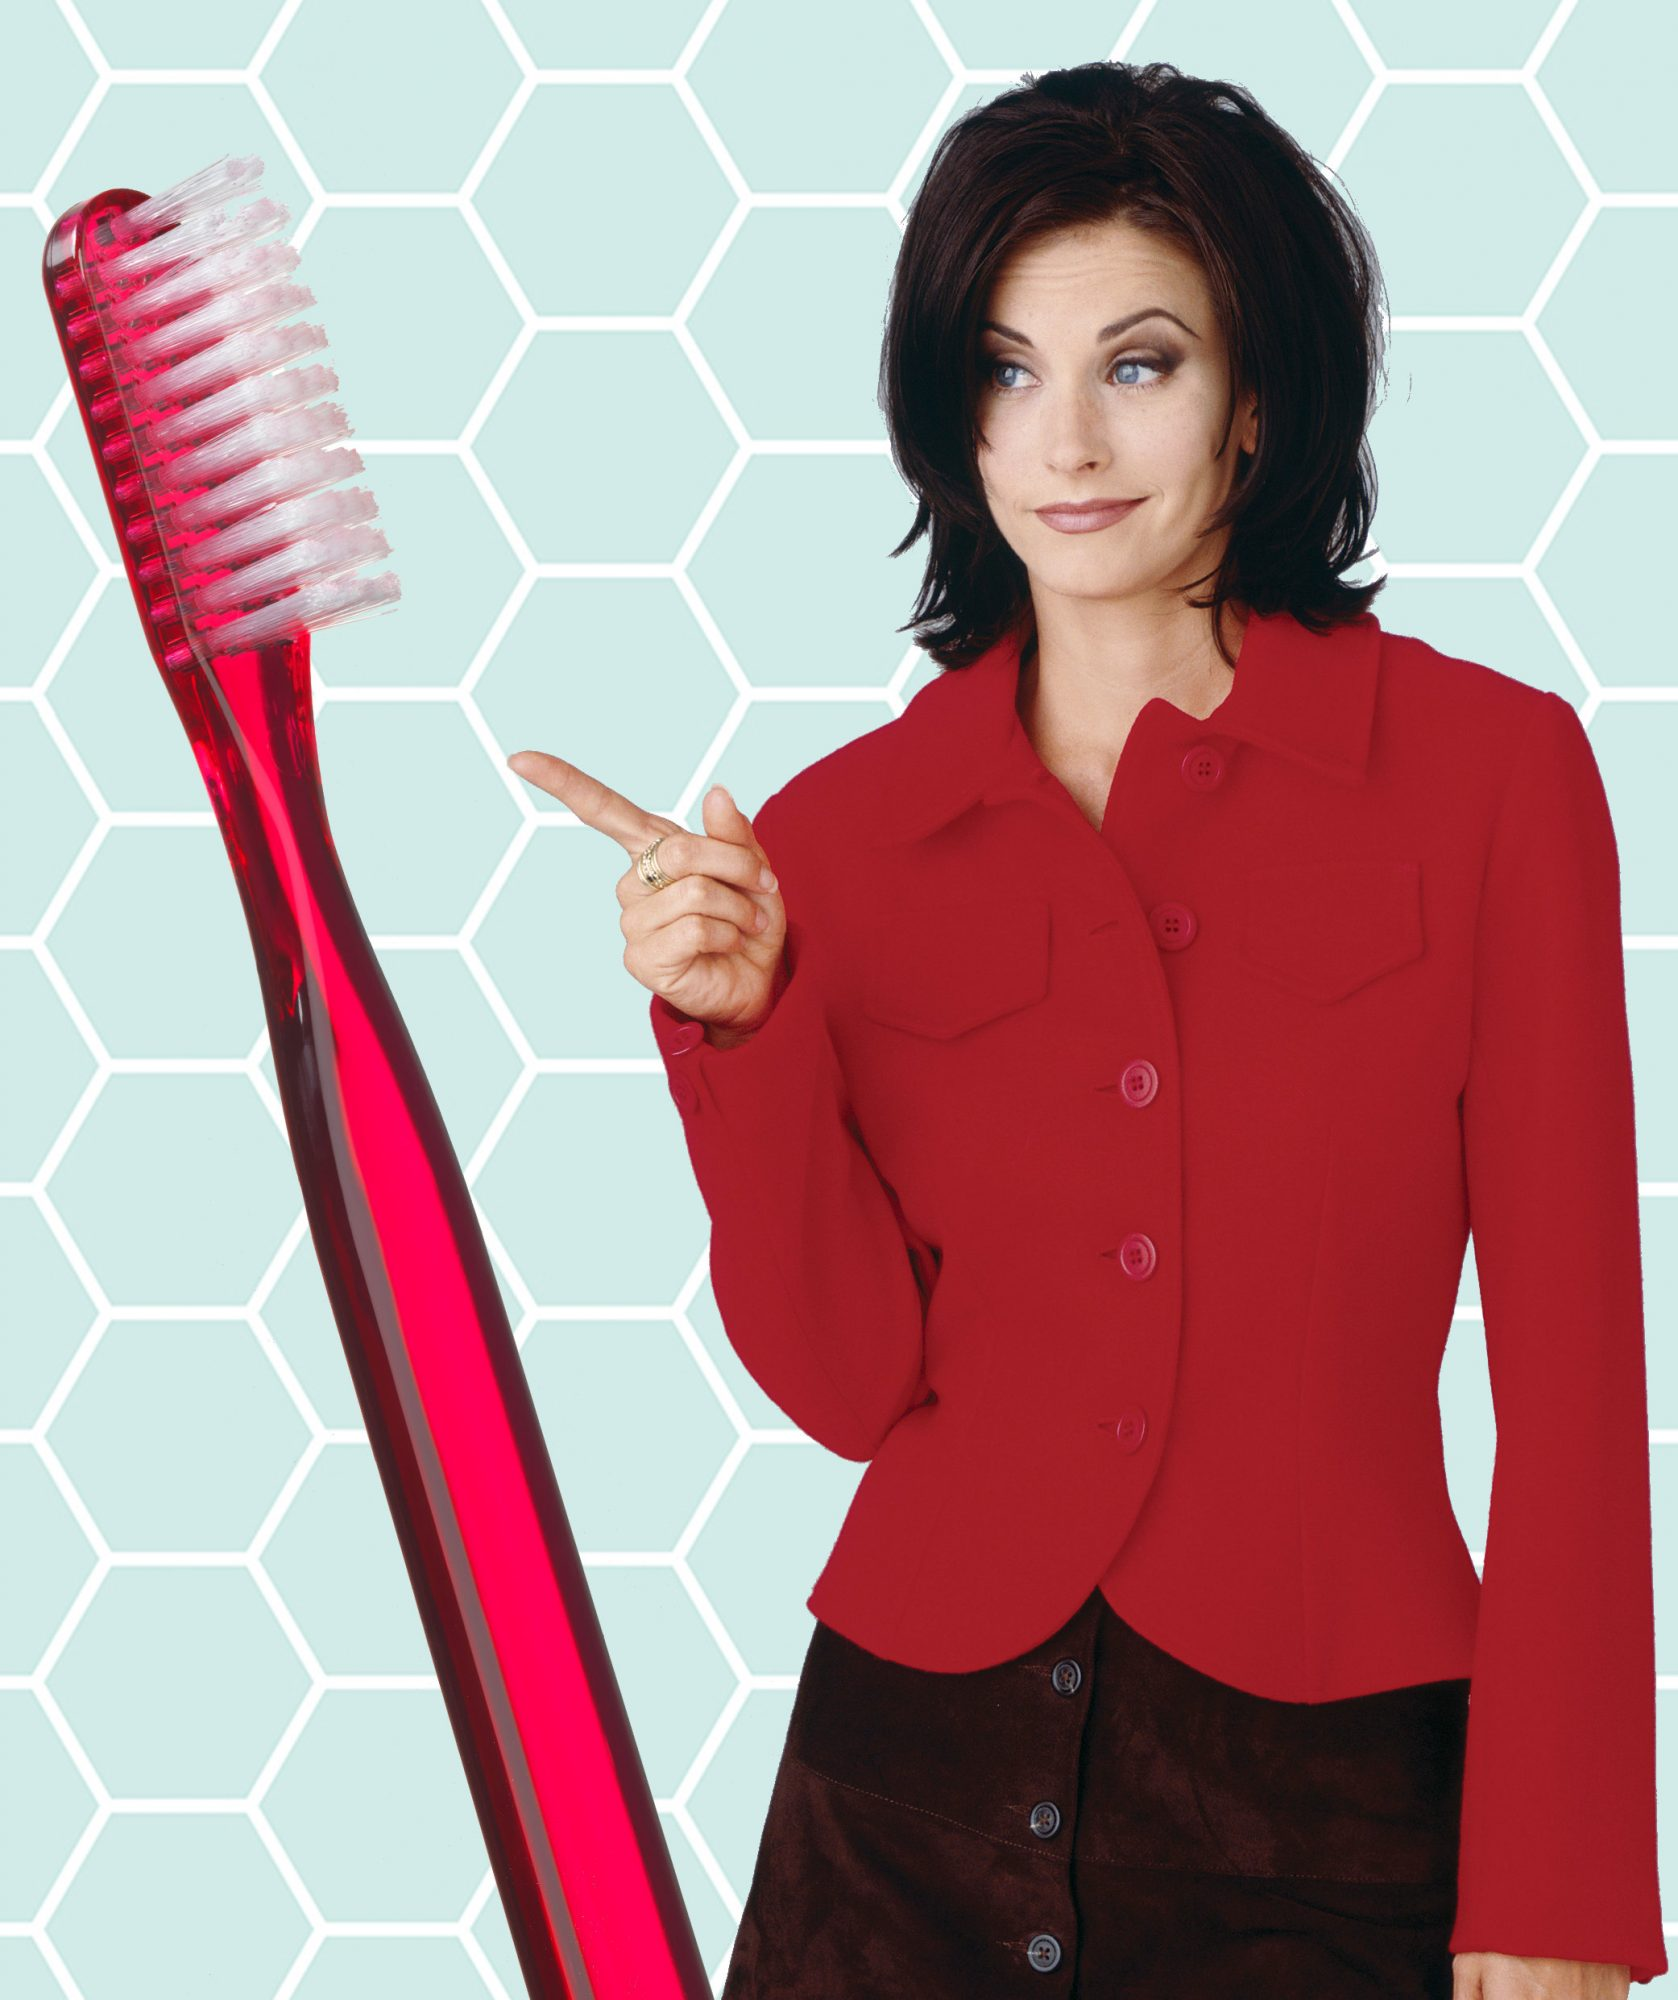 6 Genius Cleaning Hacks Even Monica Geller Hasn't Heard of Yet